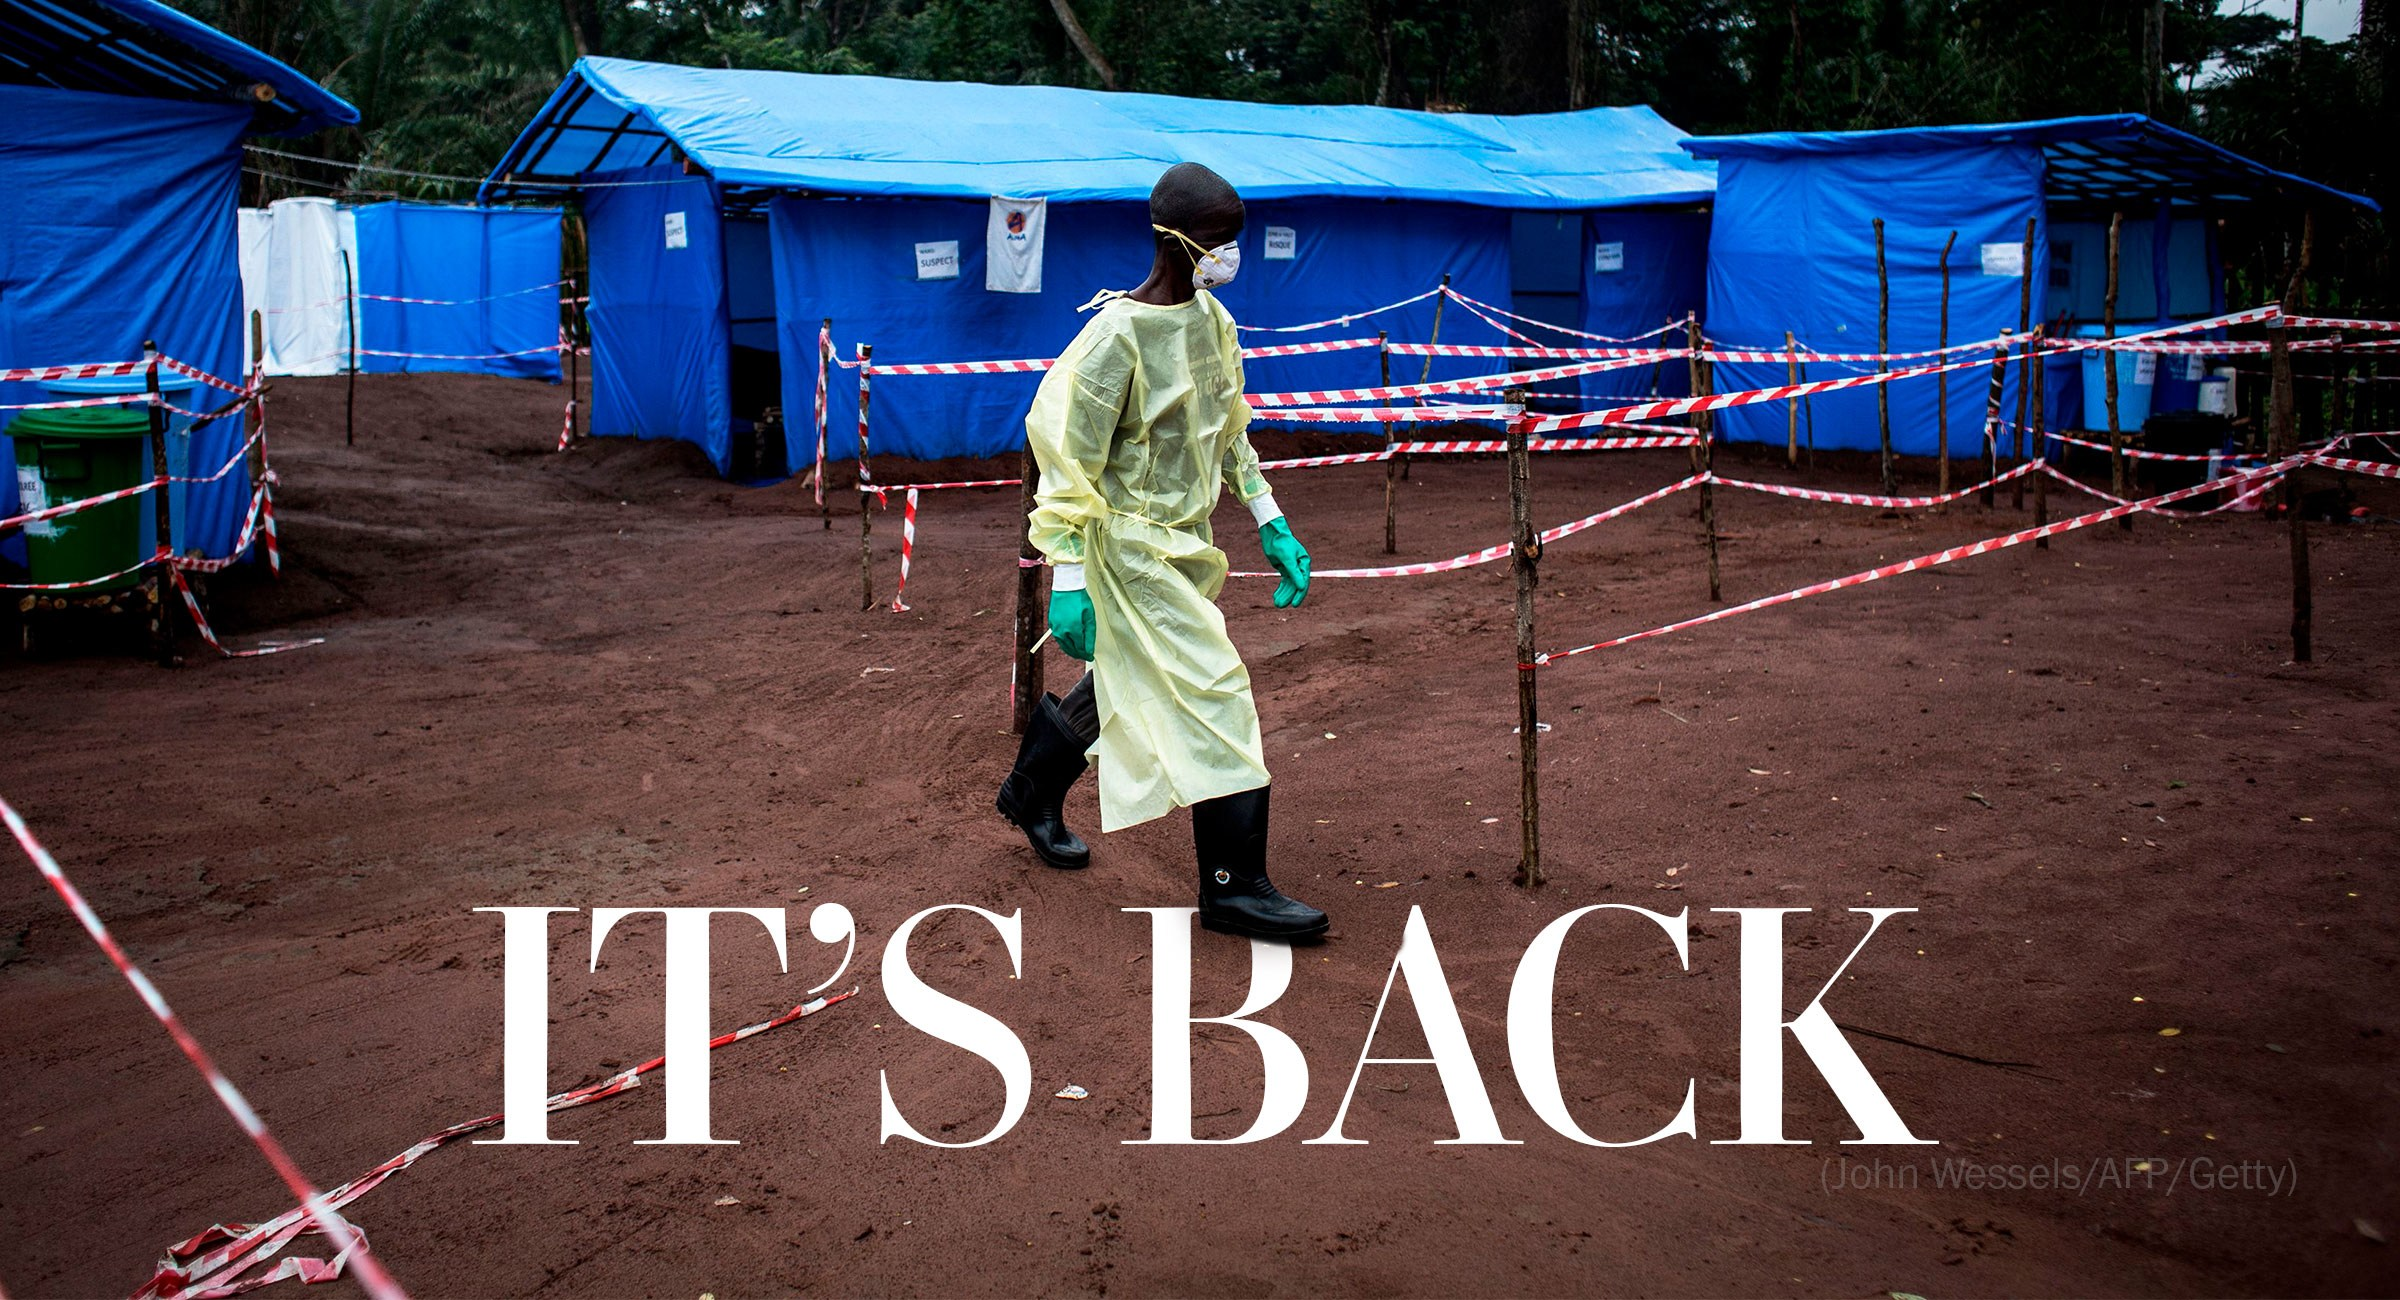 The quiet return of Ebola - The Washington Post